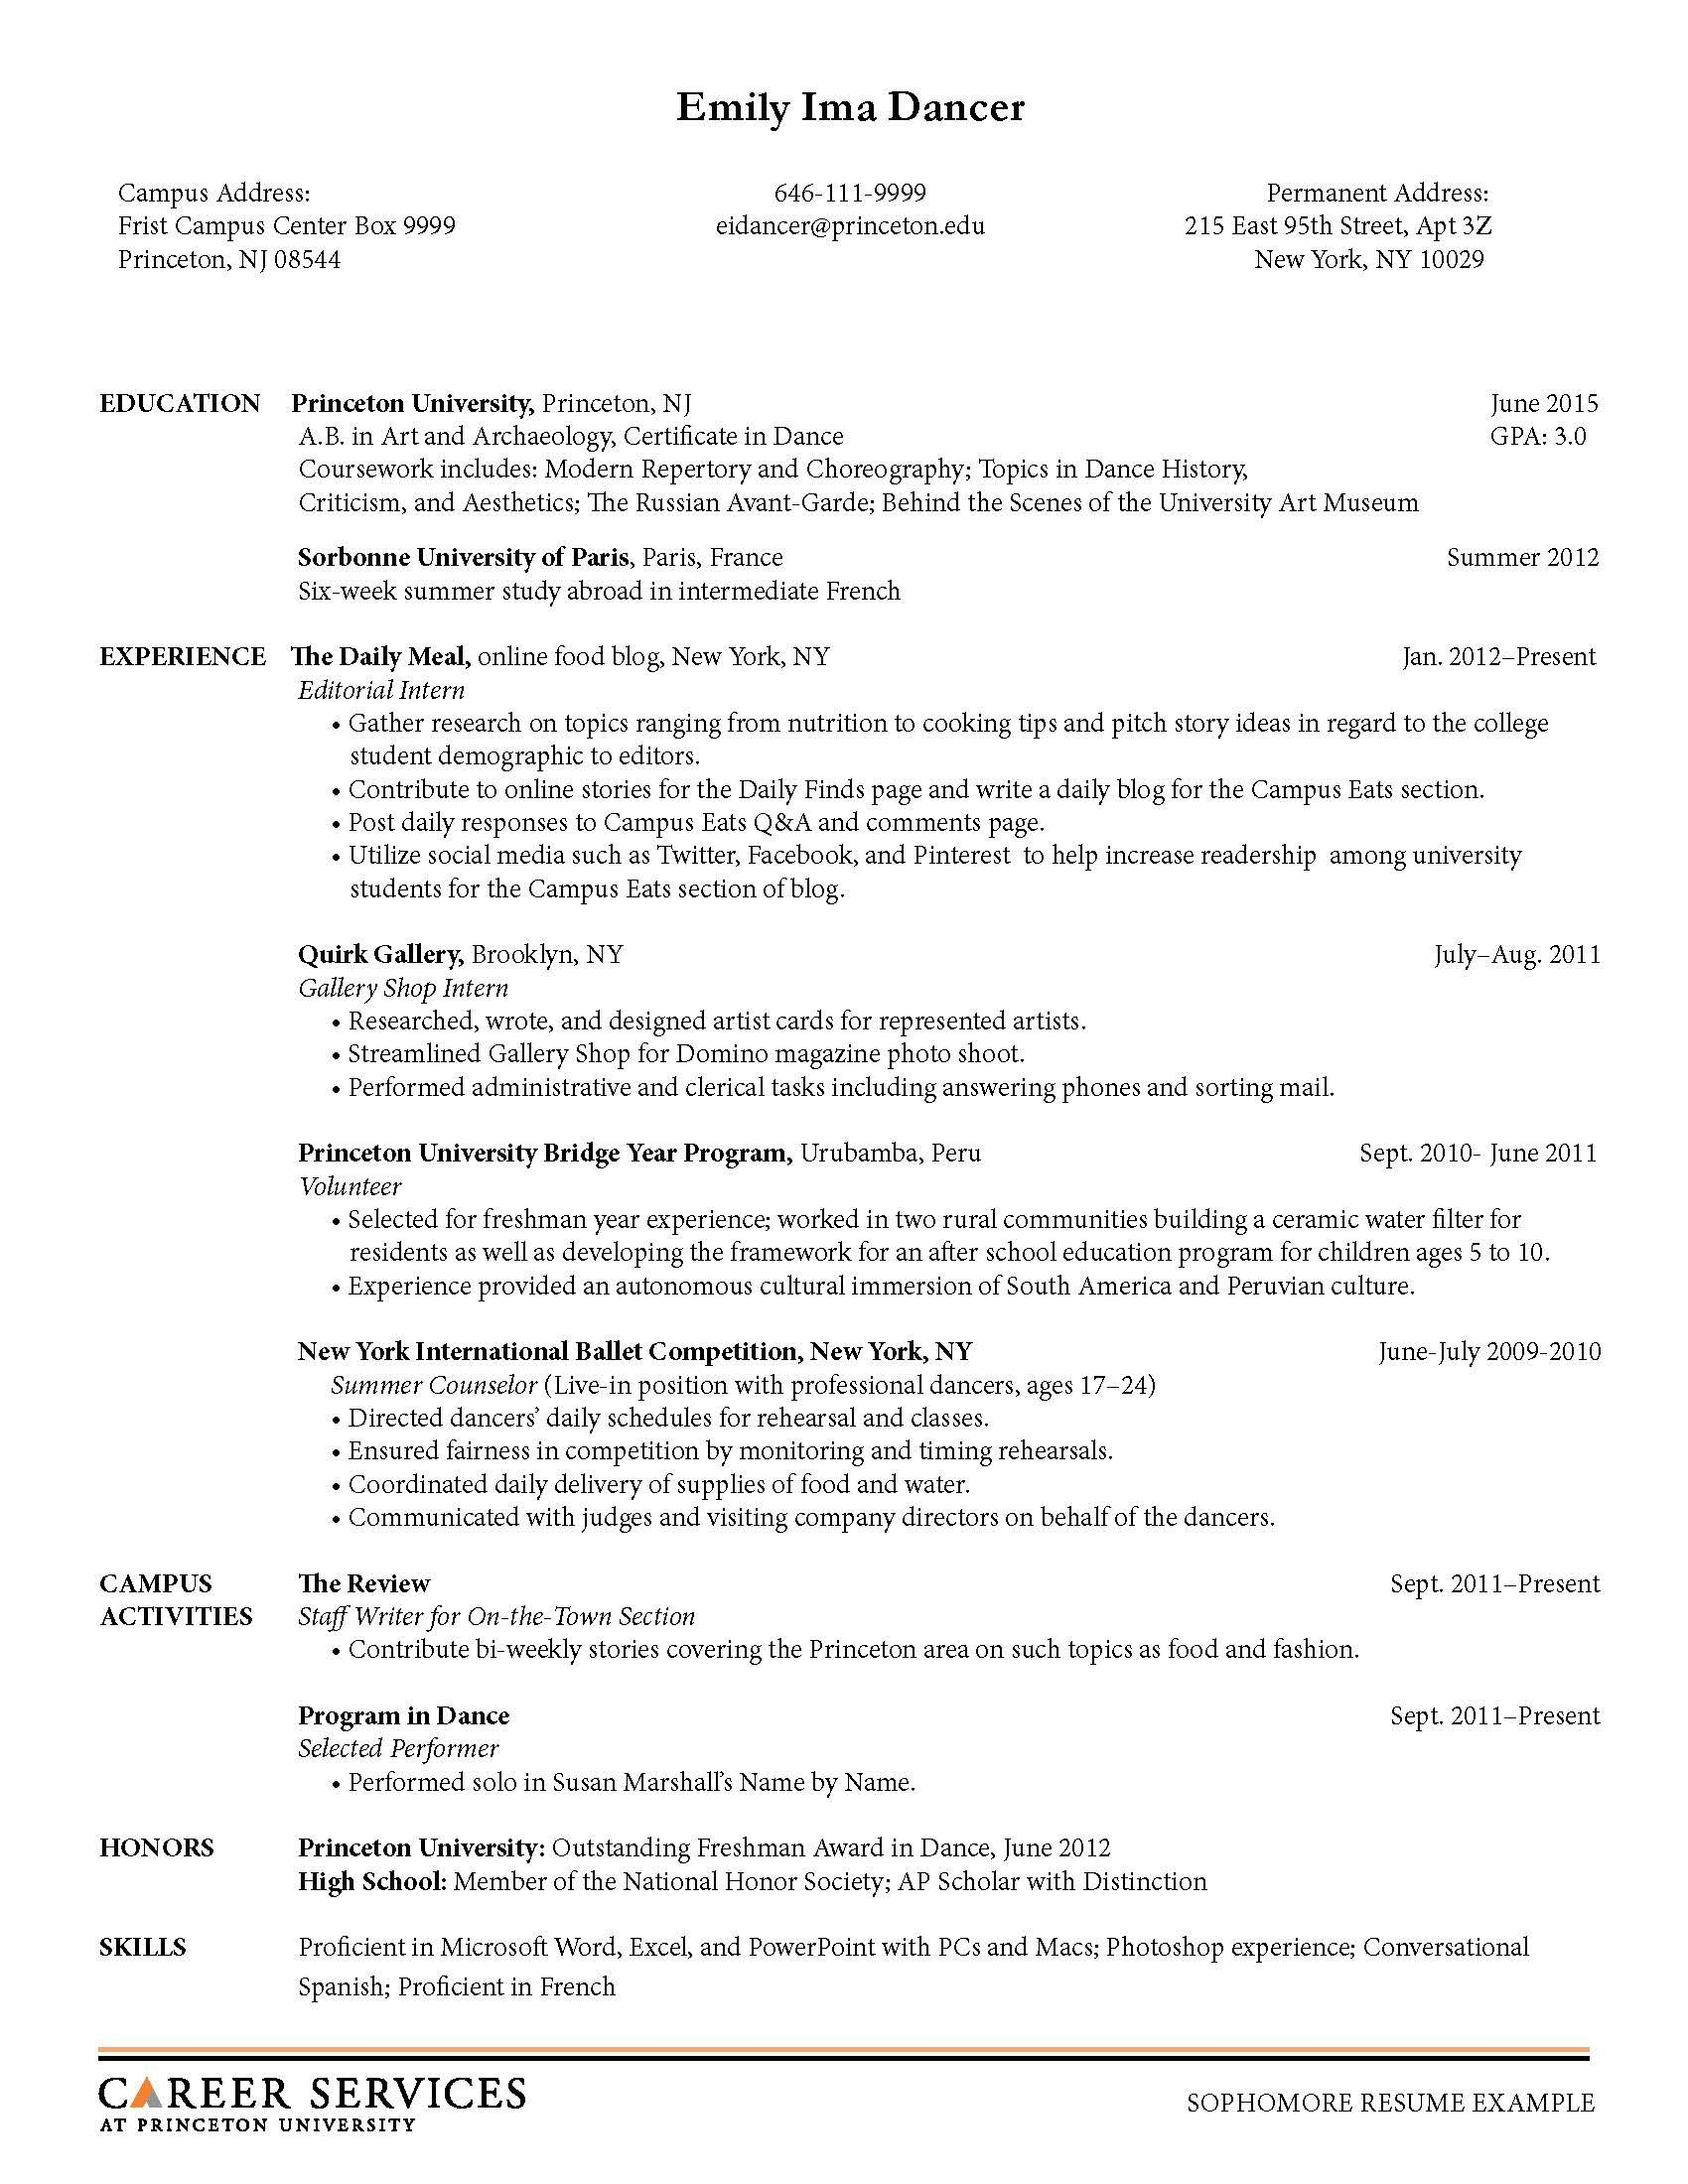 Opposenewapstandardsus  Outstanding Sample Resume Resume And Career On Pinterest With Interesting Two Page Resume Examples Besides Infographic Resume Examples Furthermore Resume Additional Skills Examples With Captivating Webmaster Resume Also Personal Skills List Resume In Addition Massage Therapist Resumes And Computer Science Graduate Resume As Well As Resume Or Curriculum Vitae Additionally Resume Helper Builder From Pinterestcom With Opposenewapstandardsus  Interesting Sample Resume Resume And Career On Pinterest With Captivating Two Page Resume Examples Besides Infographic Resume Examples Furthermore Resume Additional Skills Examples And Outstanding Webmaster Resume Also Personal Skills List Resume In Addition Massage Therapist Resumes From Pinterestcom